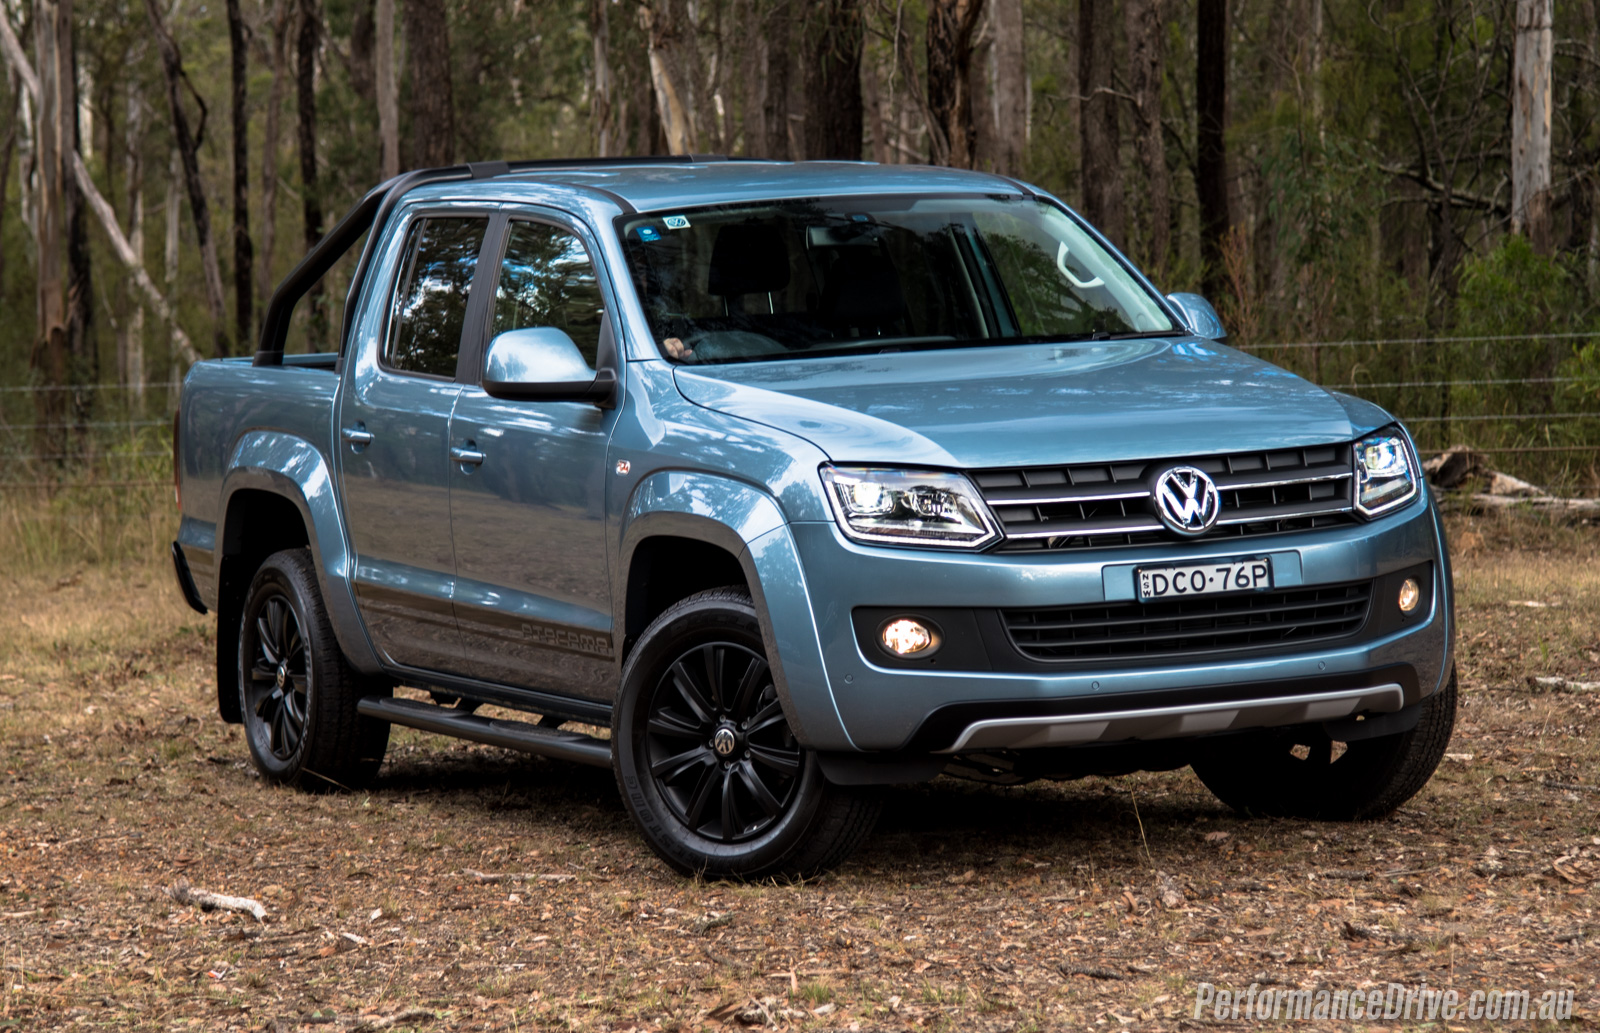 Vw Amarok Modified >> 2016 Volkswagen Amarok Atacama TDI420 review (video) | PerformanceDrive